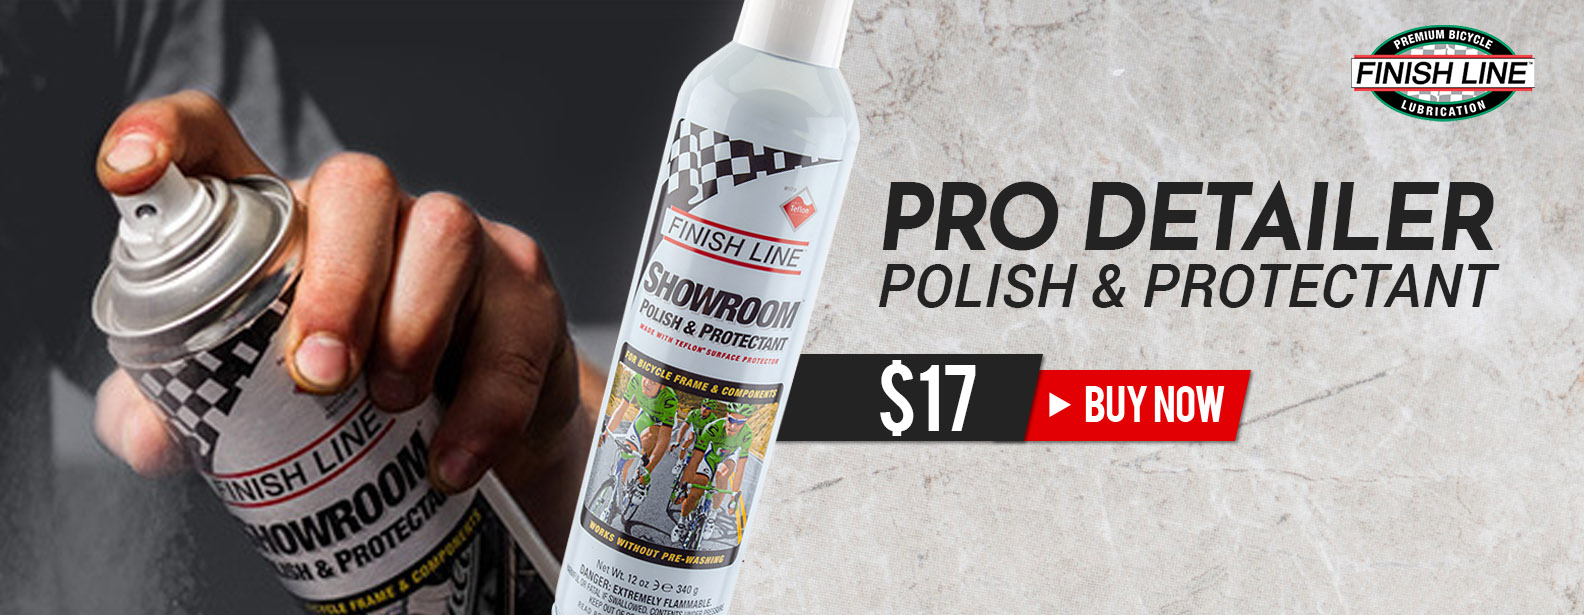 Finish Line Pro Detailer Polish & Protectant